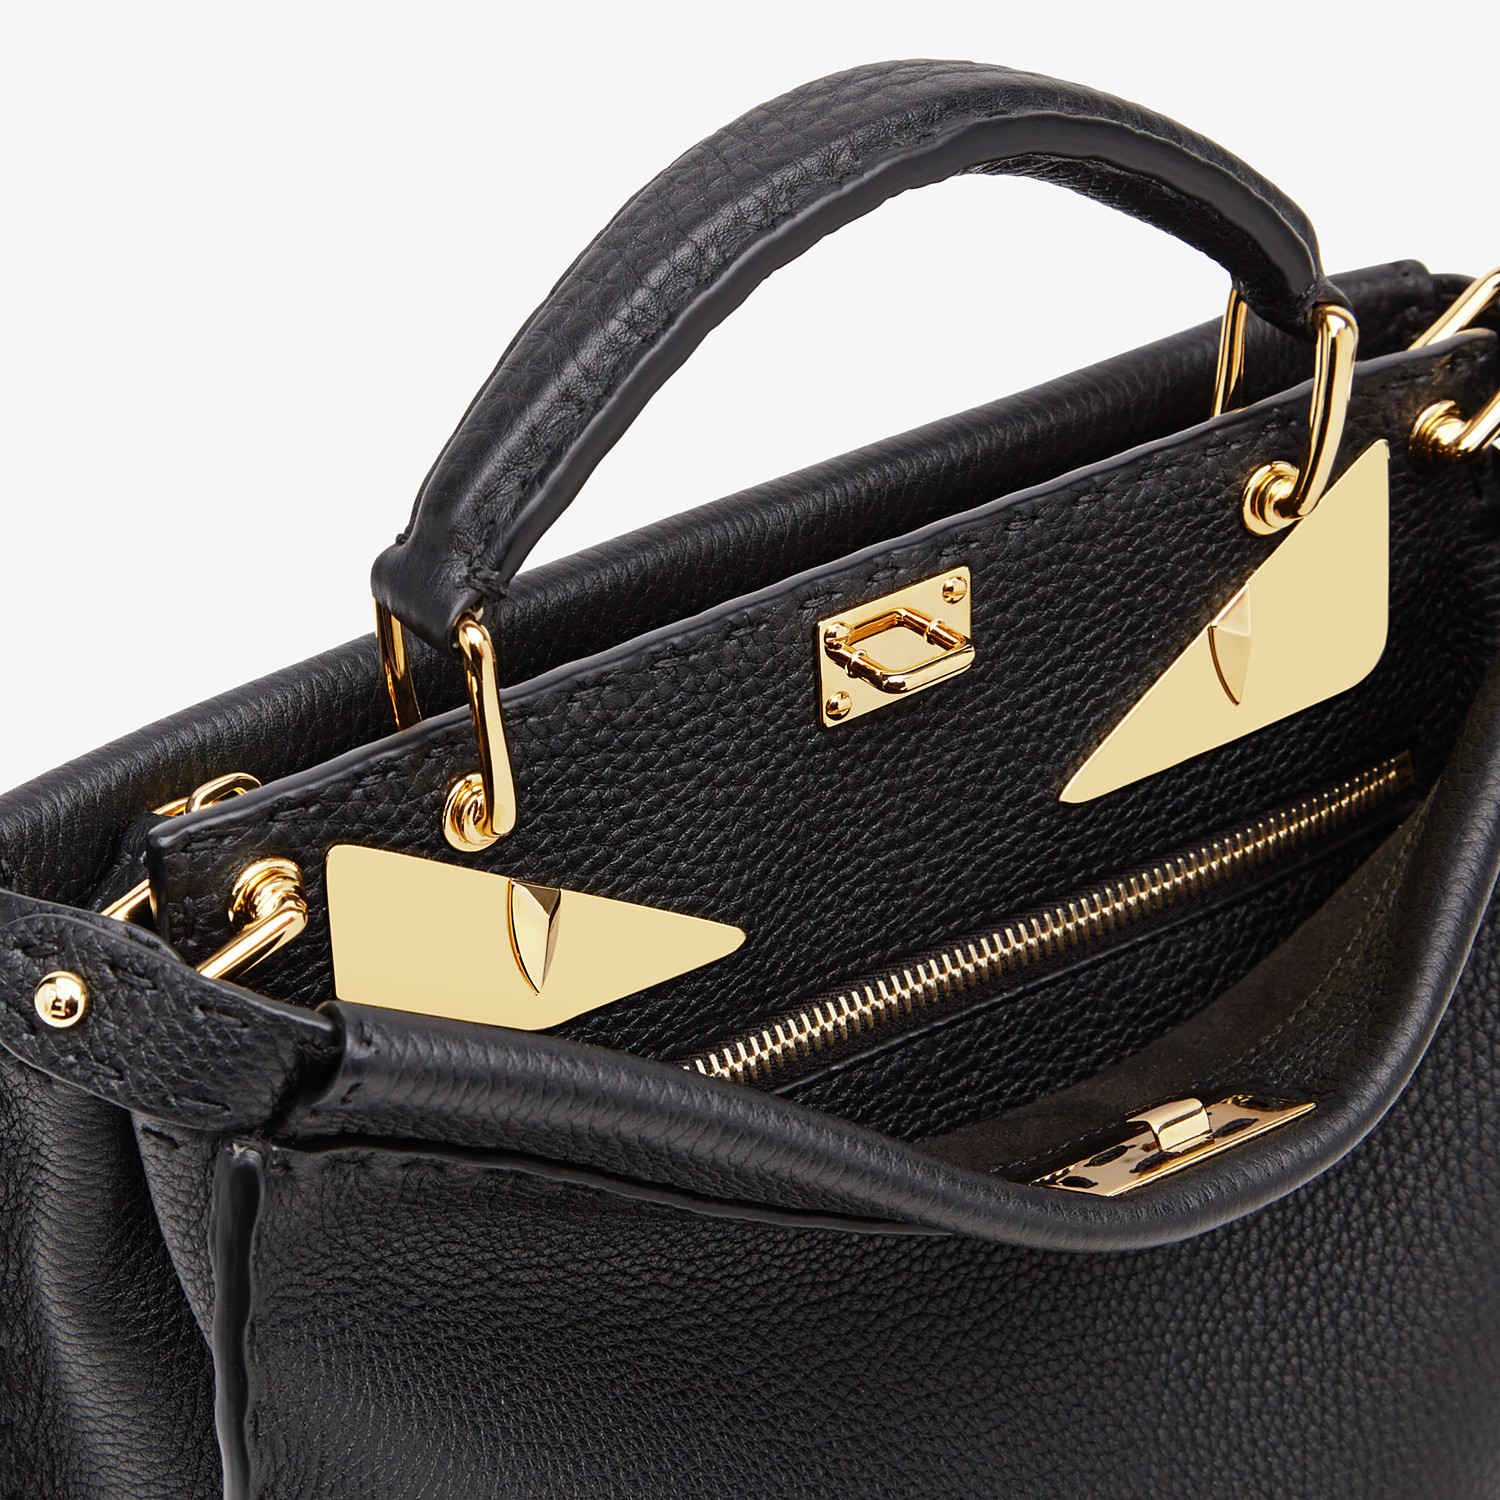 FENDI PEEKABOO ICONIC FIT MINI - Black leather bag - view 5 detail